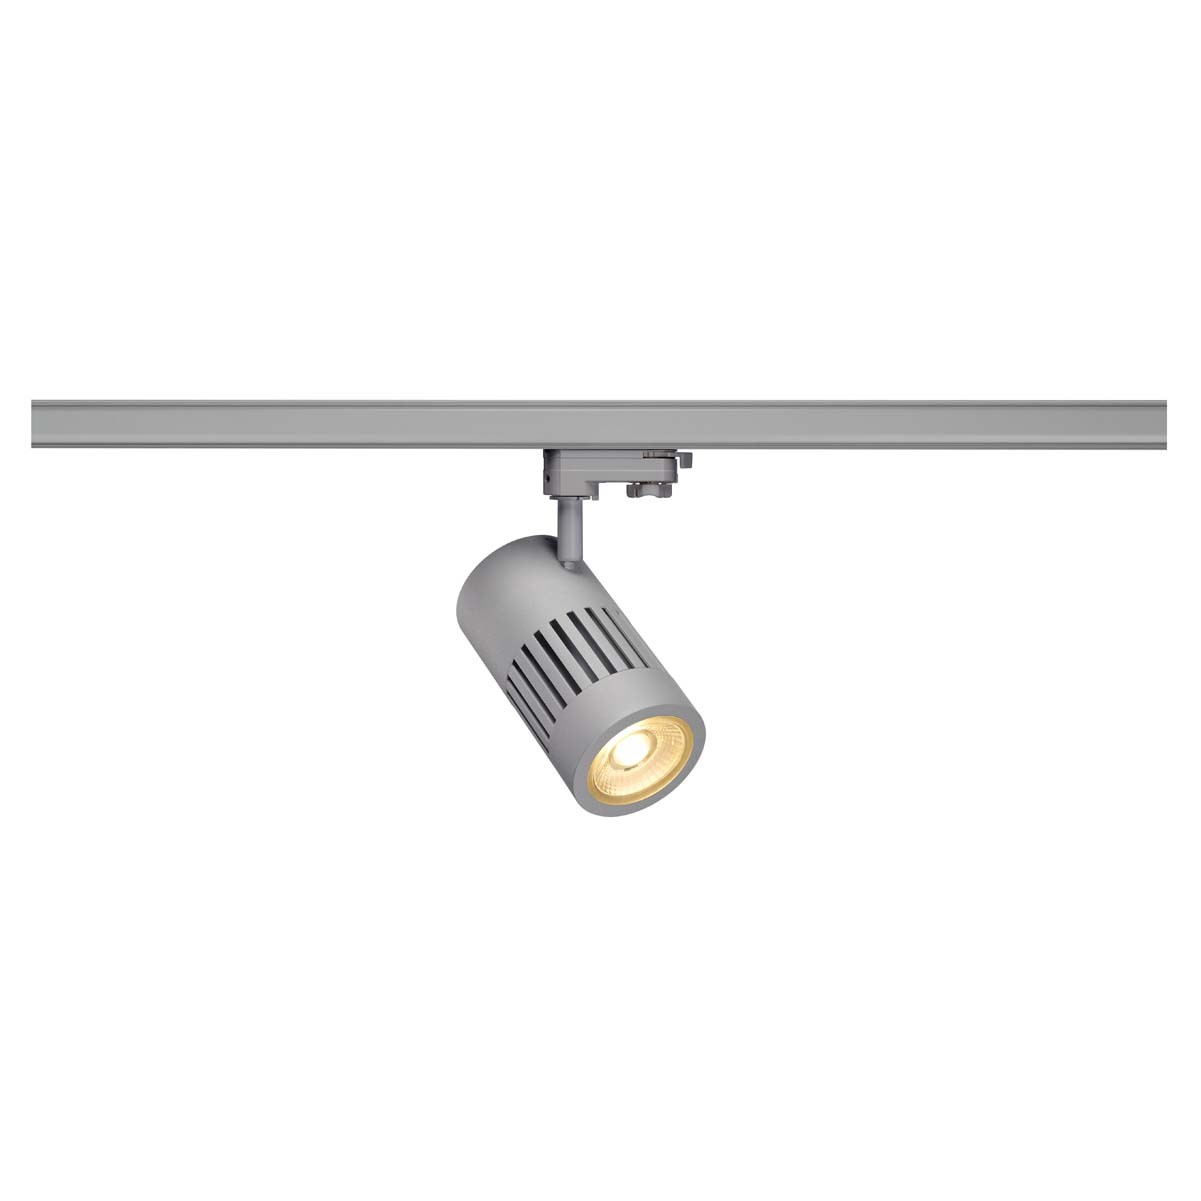 SLV 176044 STRUCTEC LED 30W, round, silver, 3000K, 36°, incl. 3-phase adapter